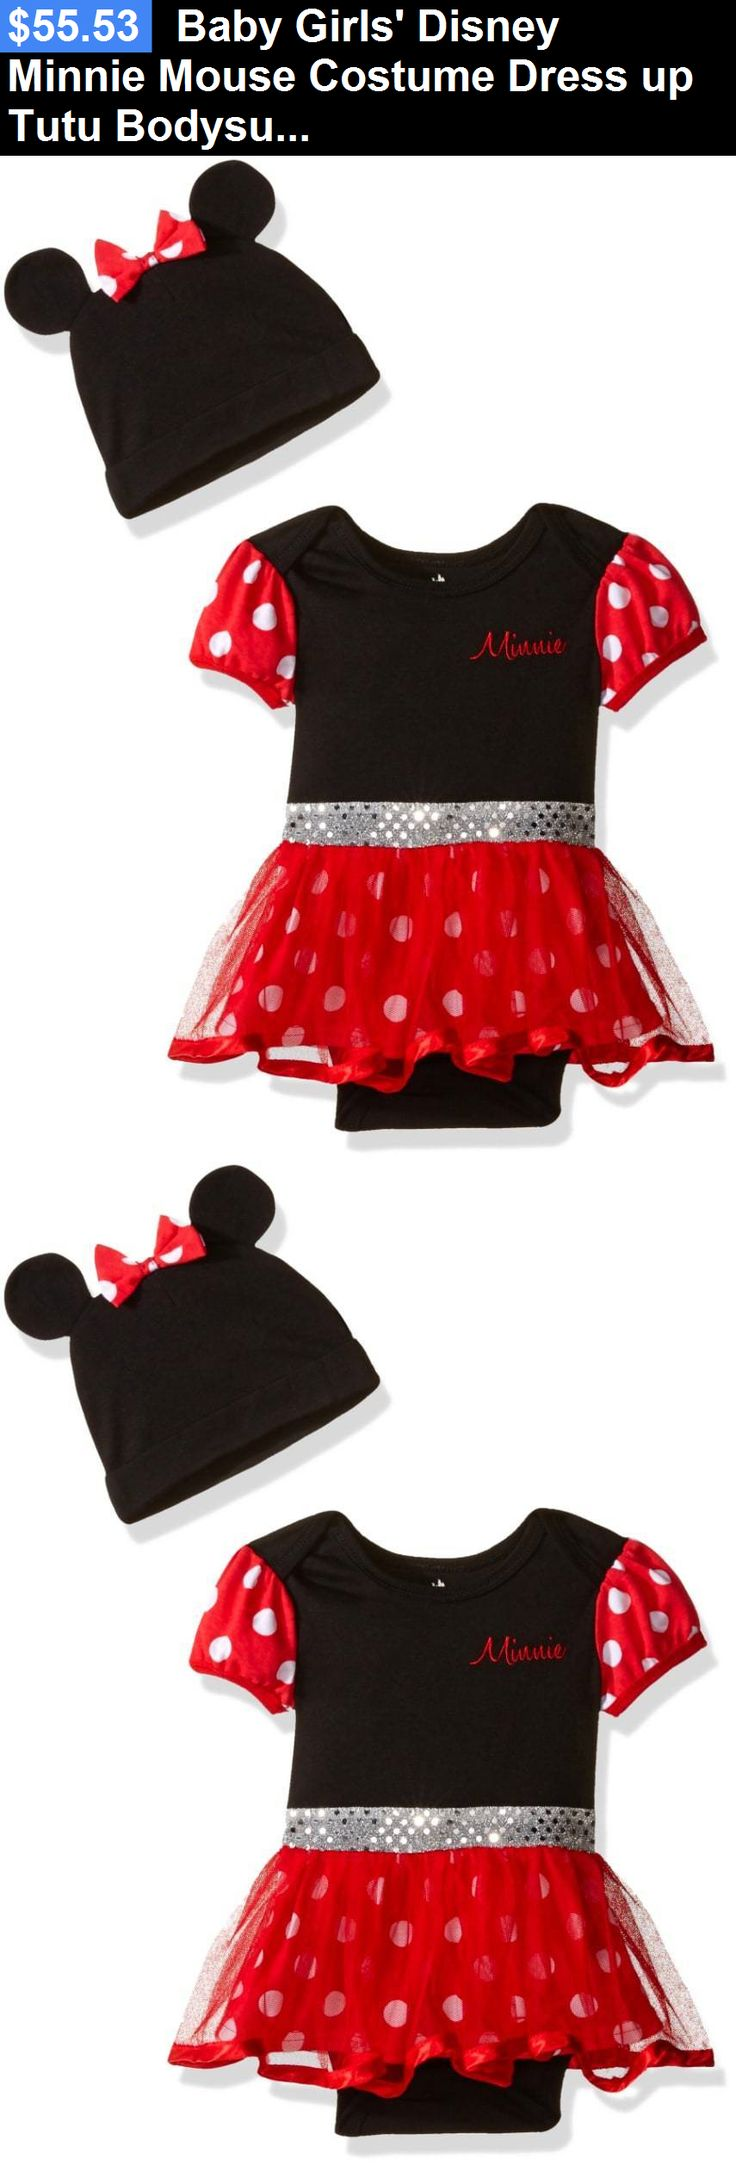 Kids Costumes: Baby Girls Disney Minnie Mouse Costume Dress Up Tutu Bodysuit And Cap, Red, 3-6 BUY IT NOW ONLY: $55.53